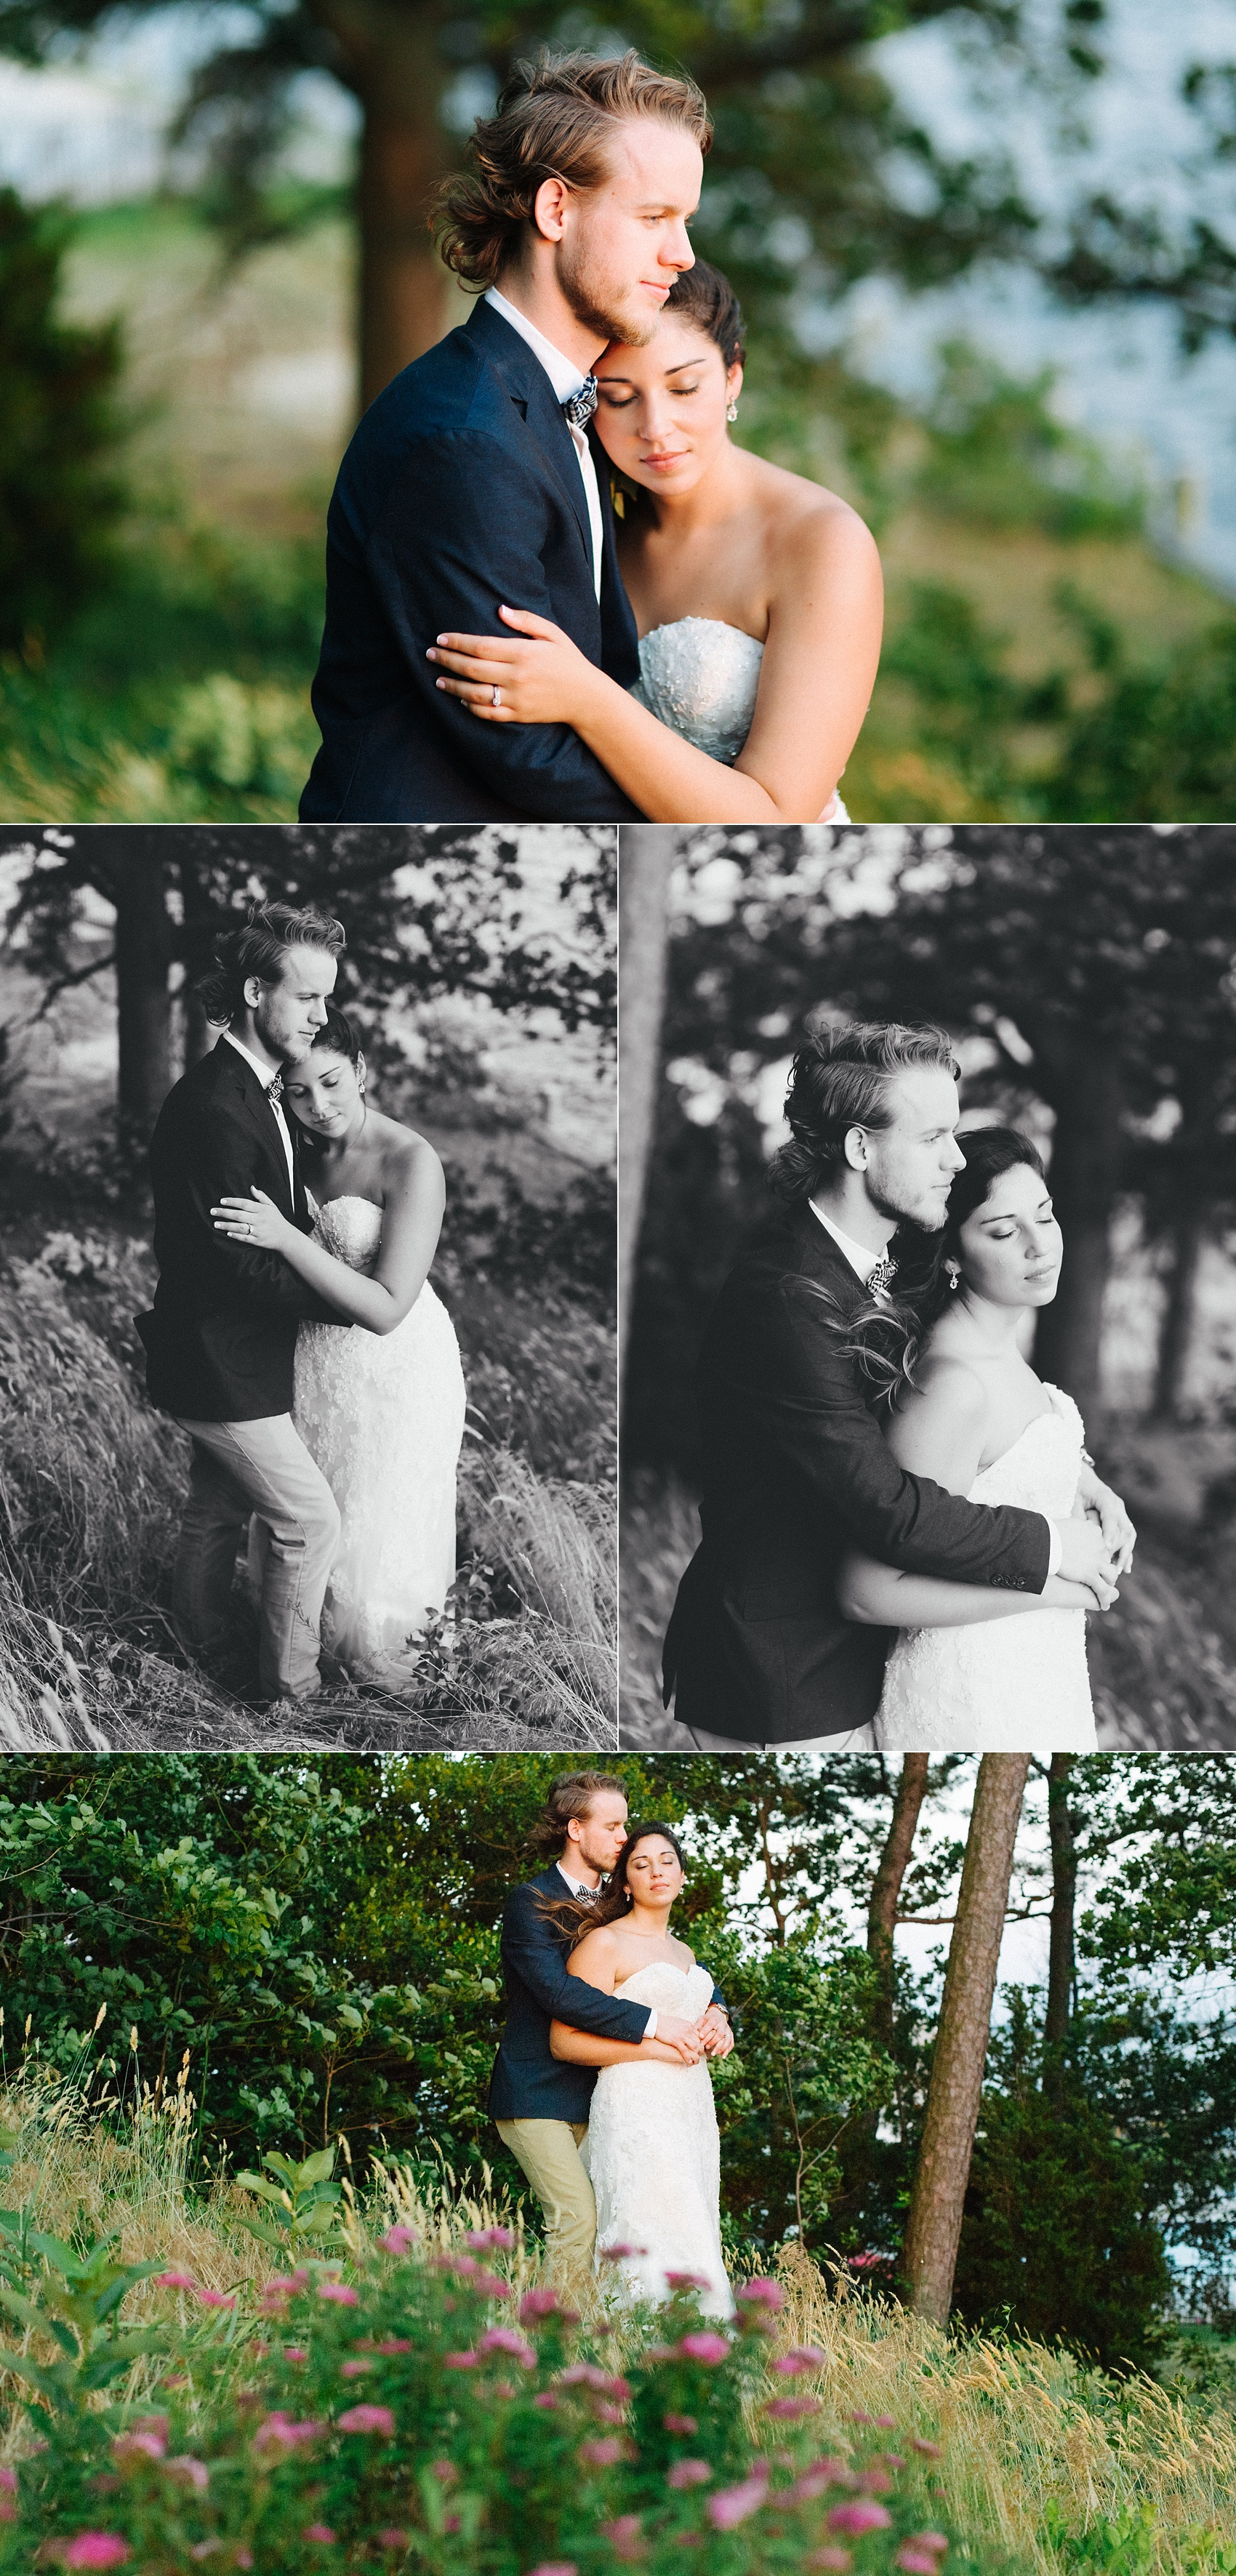 jake and katie photography toms river new jersery wedding jesse drea-29